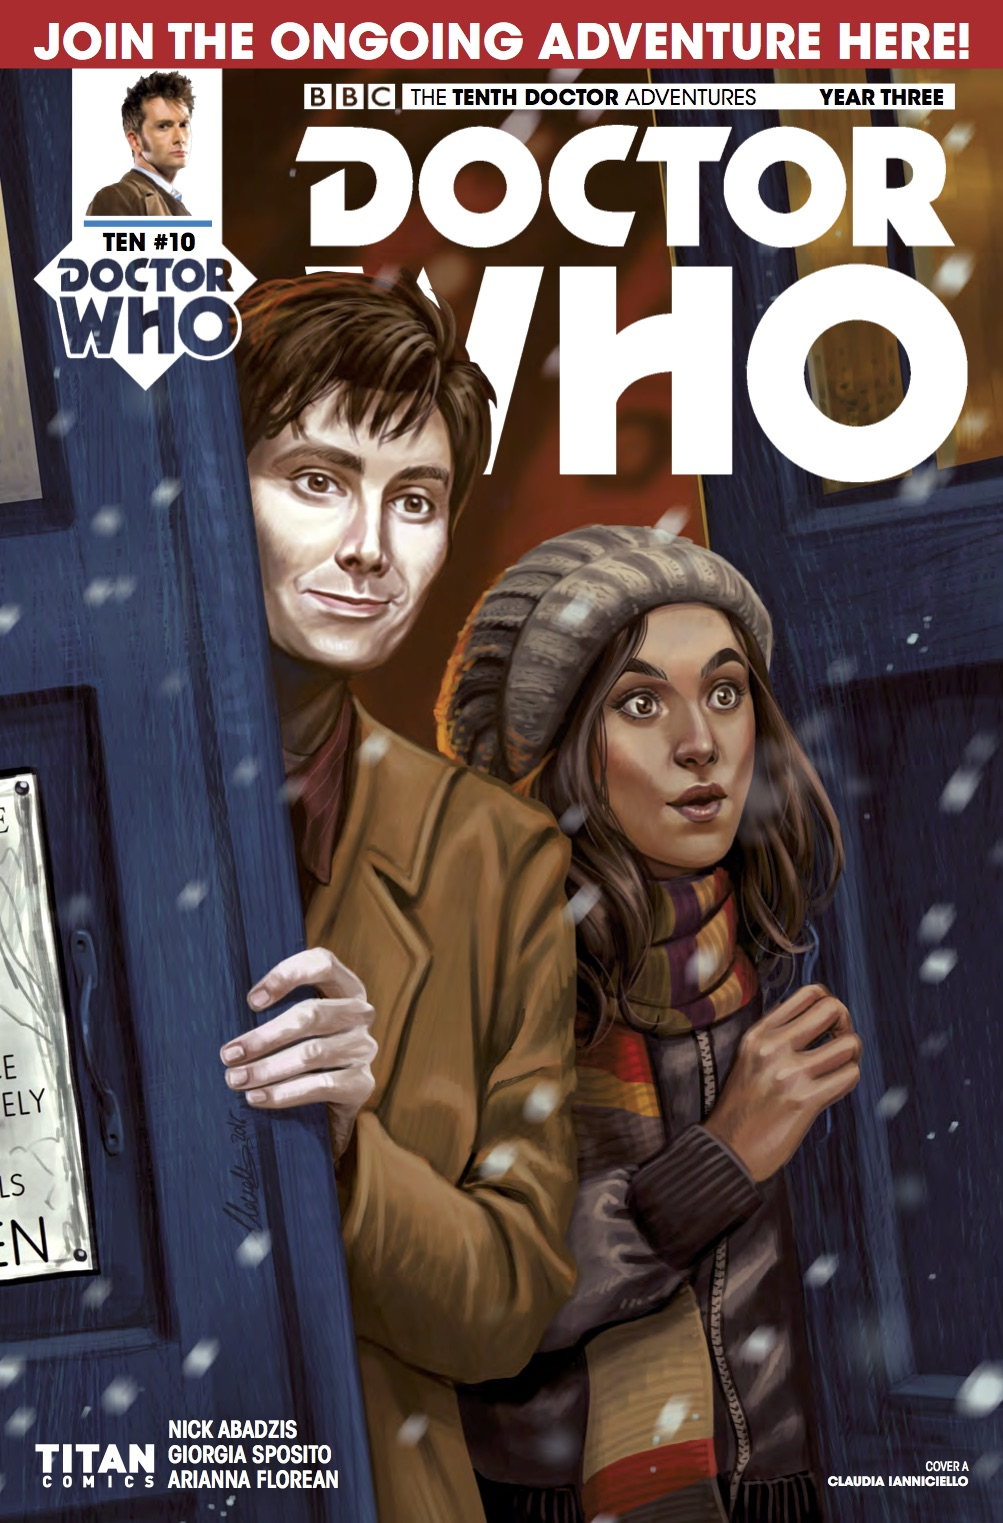 TENTH DOCTOR 3 10 - Cover A (Credit: Titan )